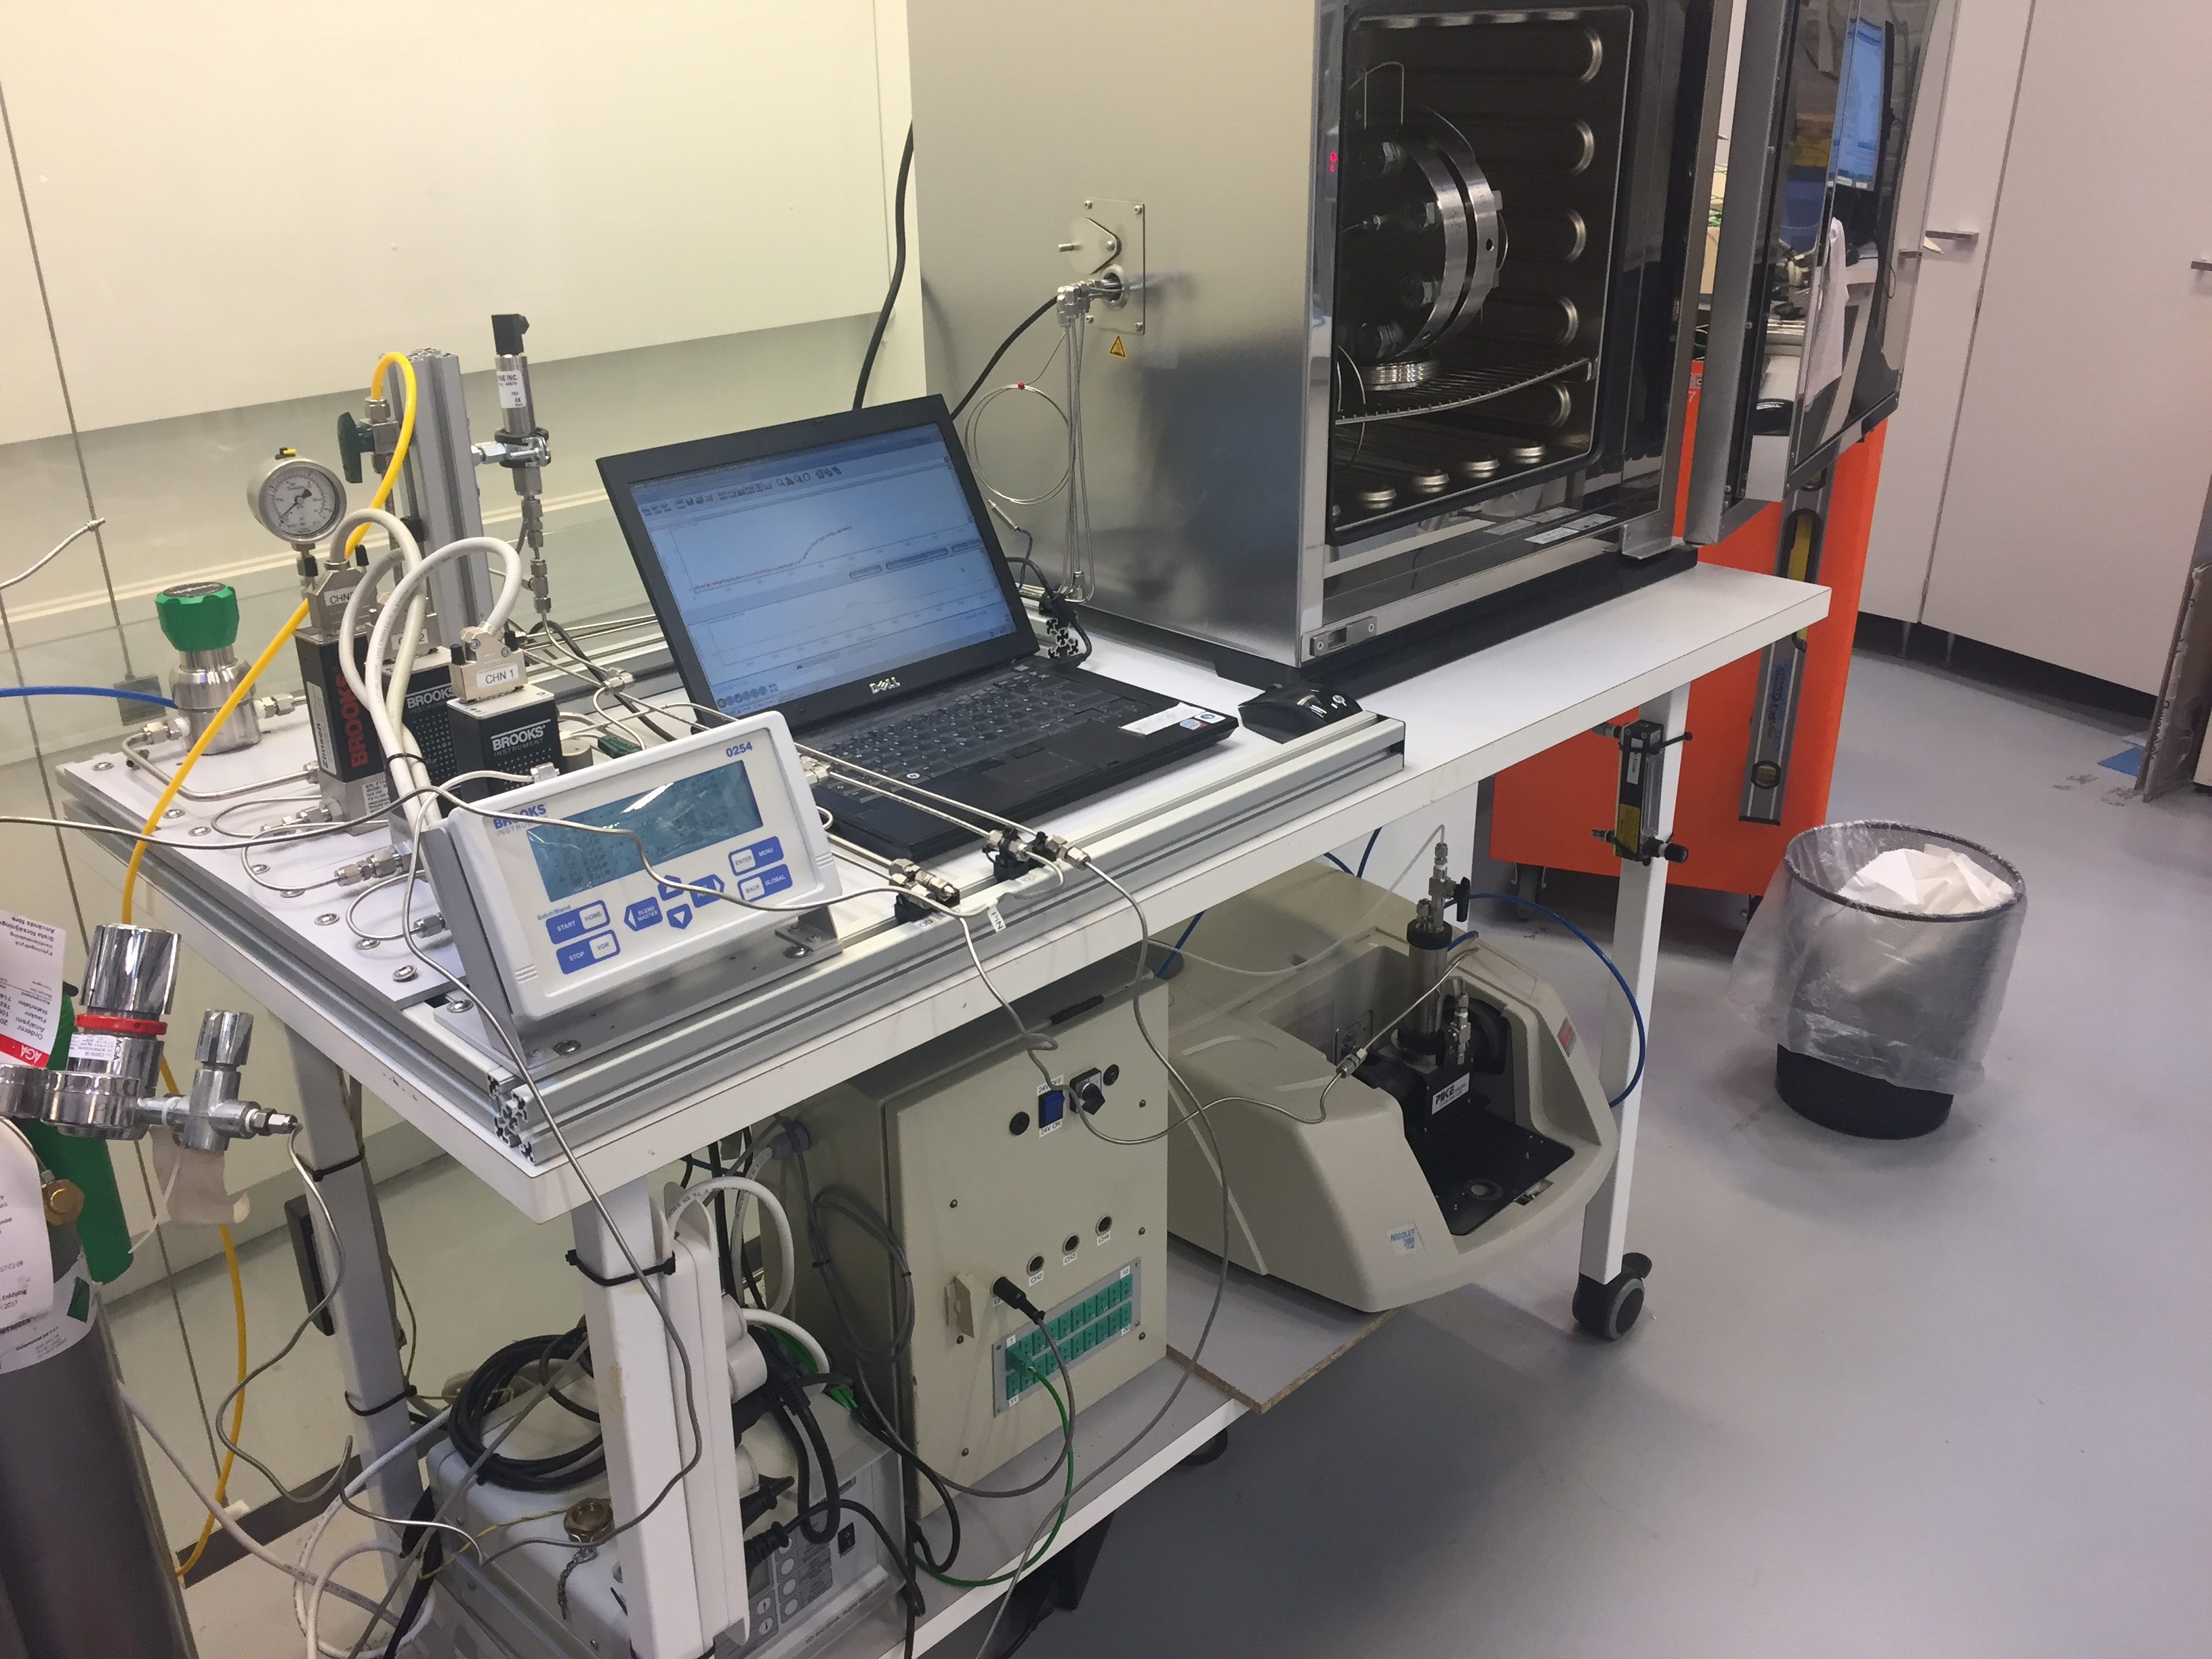 Permeation setup with oven for heating sample and FTIR with gas cell for gas measurements